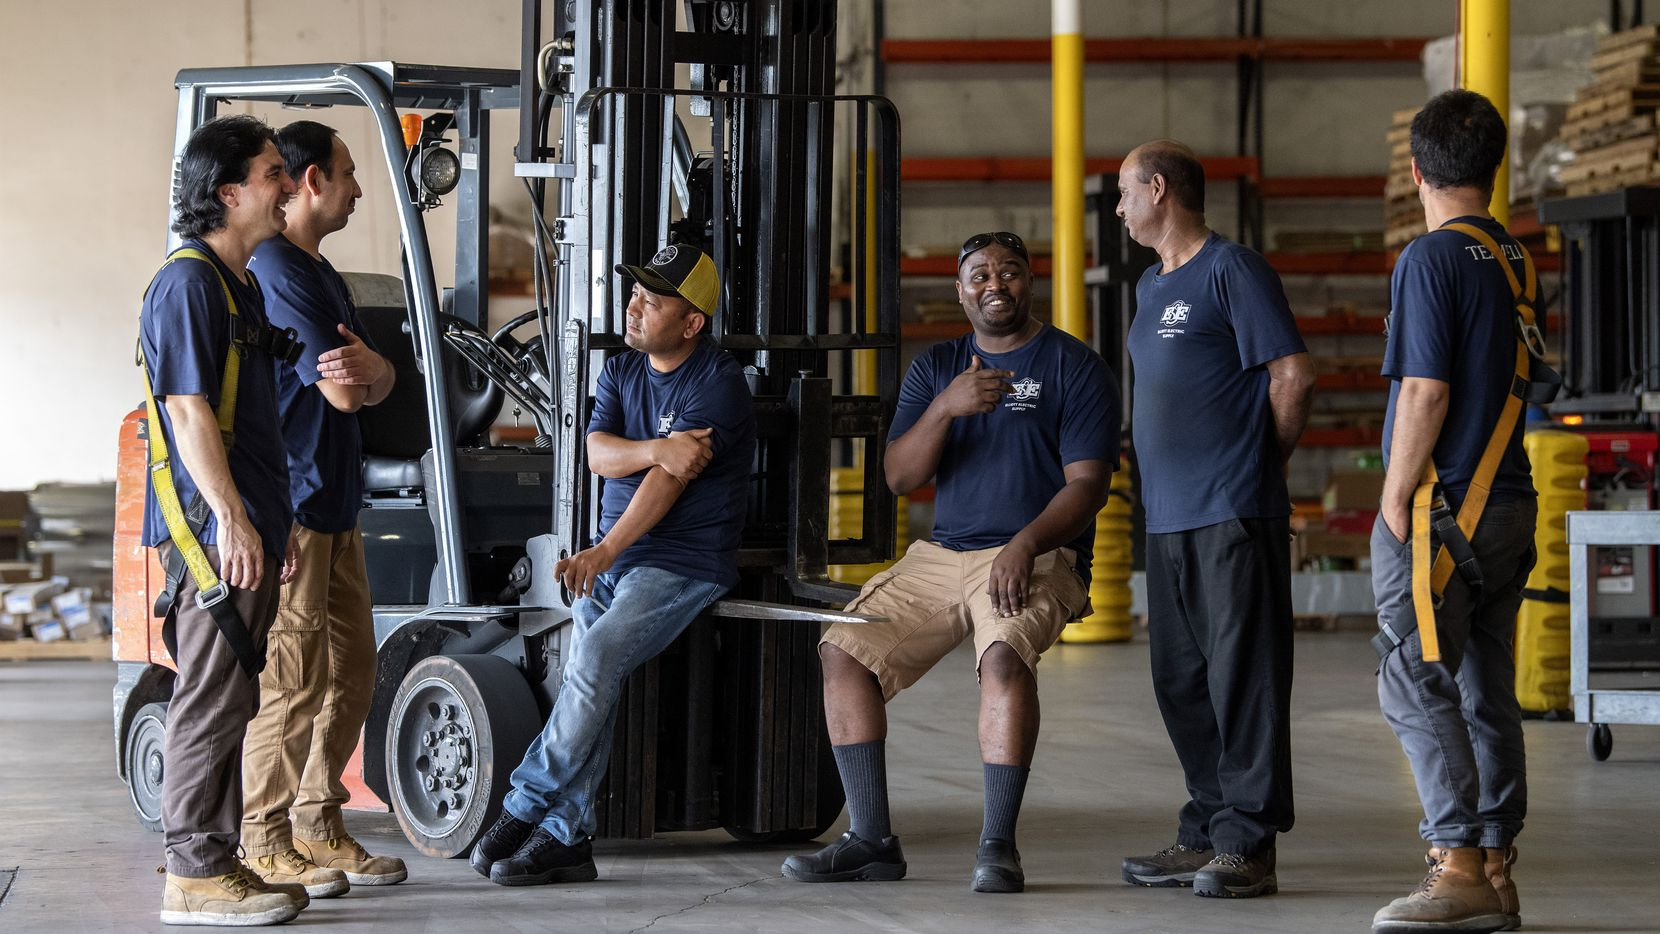 Refugees, such as these workers at Elliott Electrical Supply, contribute more in taxes than they receive in benefits, according to a study on immigrants in Dallas. Statewide, refugees in Texas have over $4.6 billion in spending power.